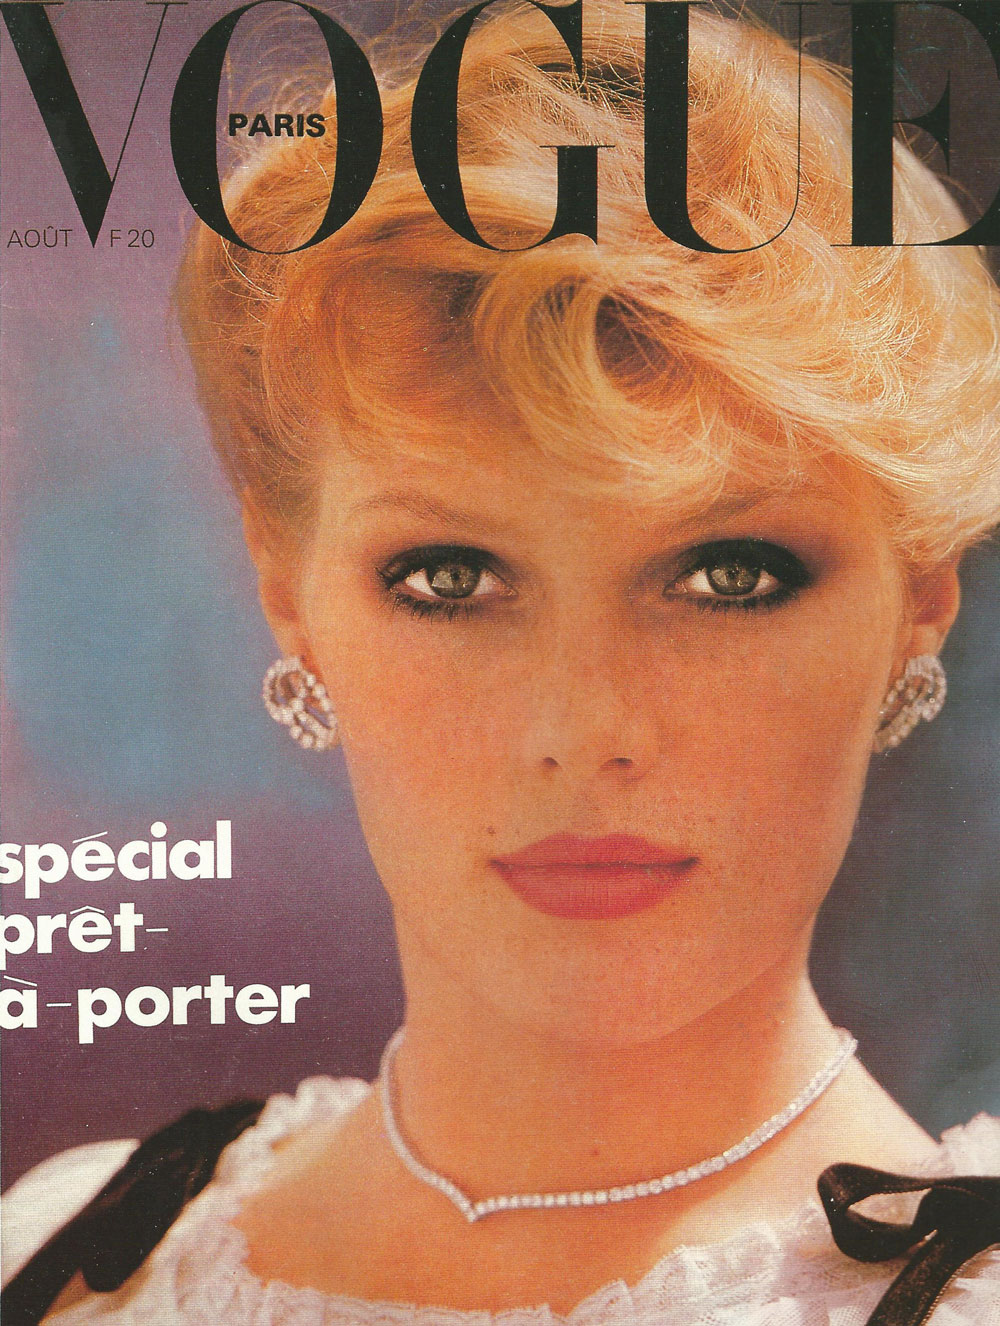 1970s Paris Vogue Hair And Makeup Artist Handbook